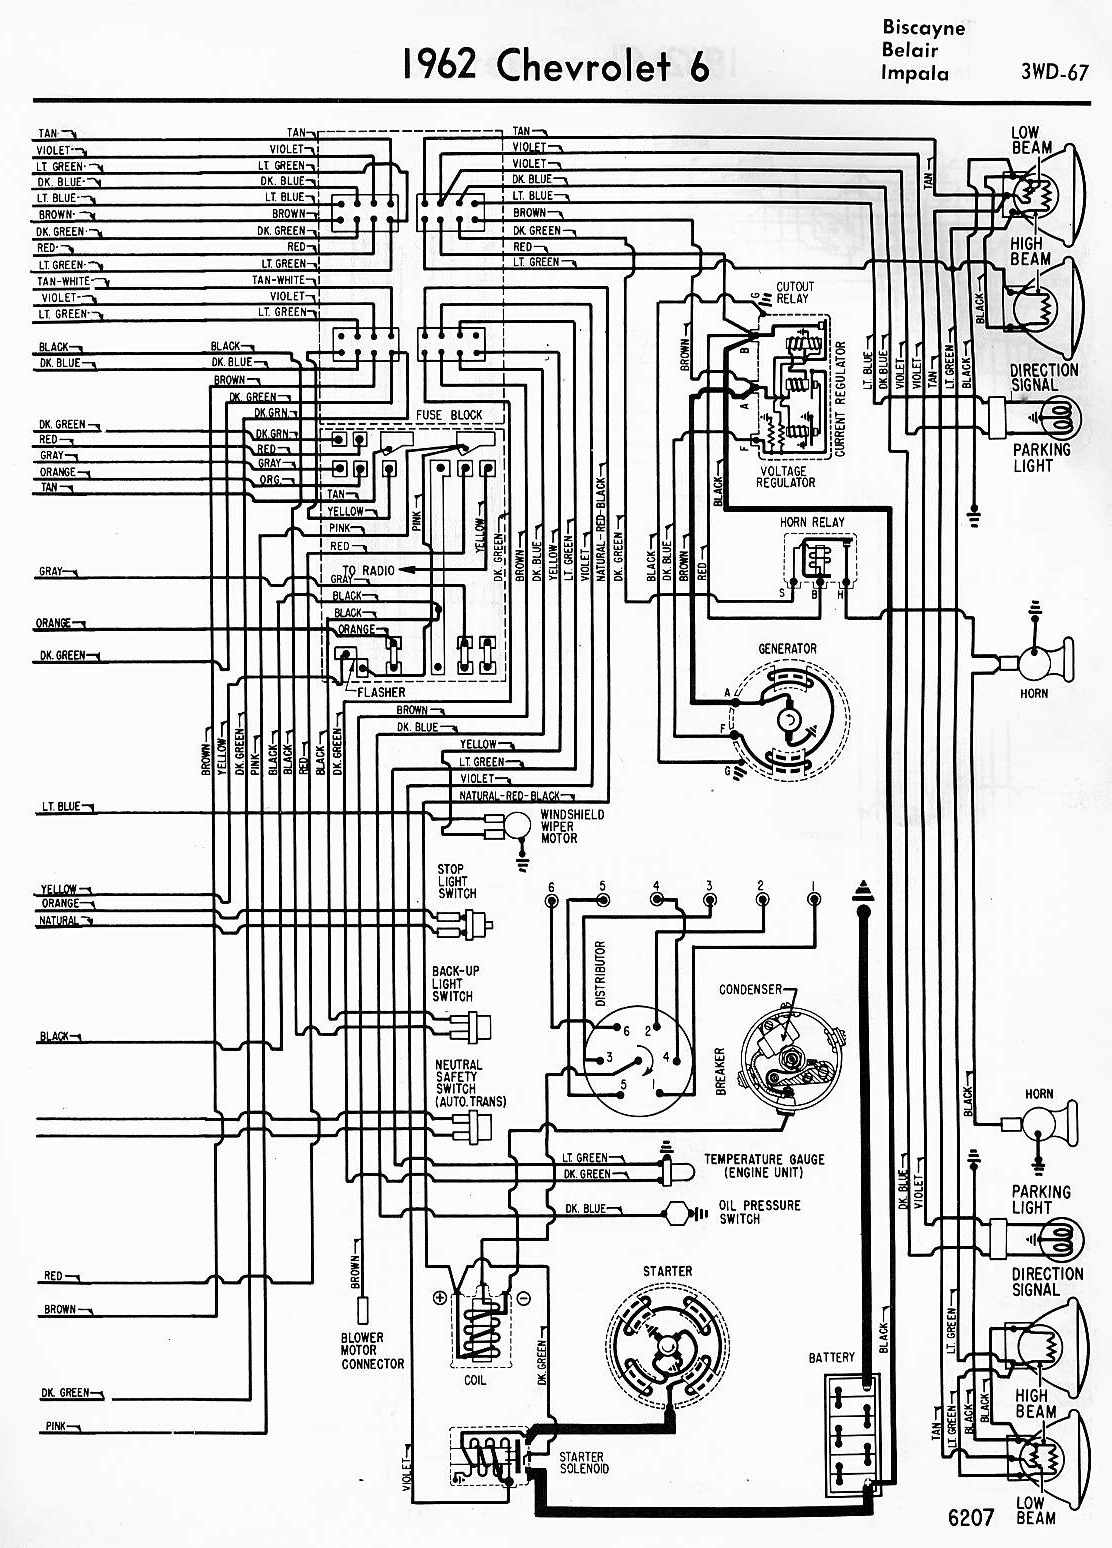 Electrical+Wiring+Diagram+Of+1964+Chevrolet+6 newport wipers wiring diagram pin wiring diagram \u2022 wiring diagrams newport engineering wiring diagram at gsmx.co